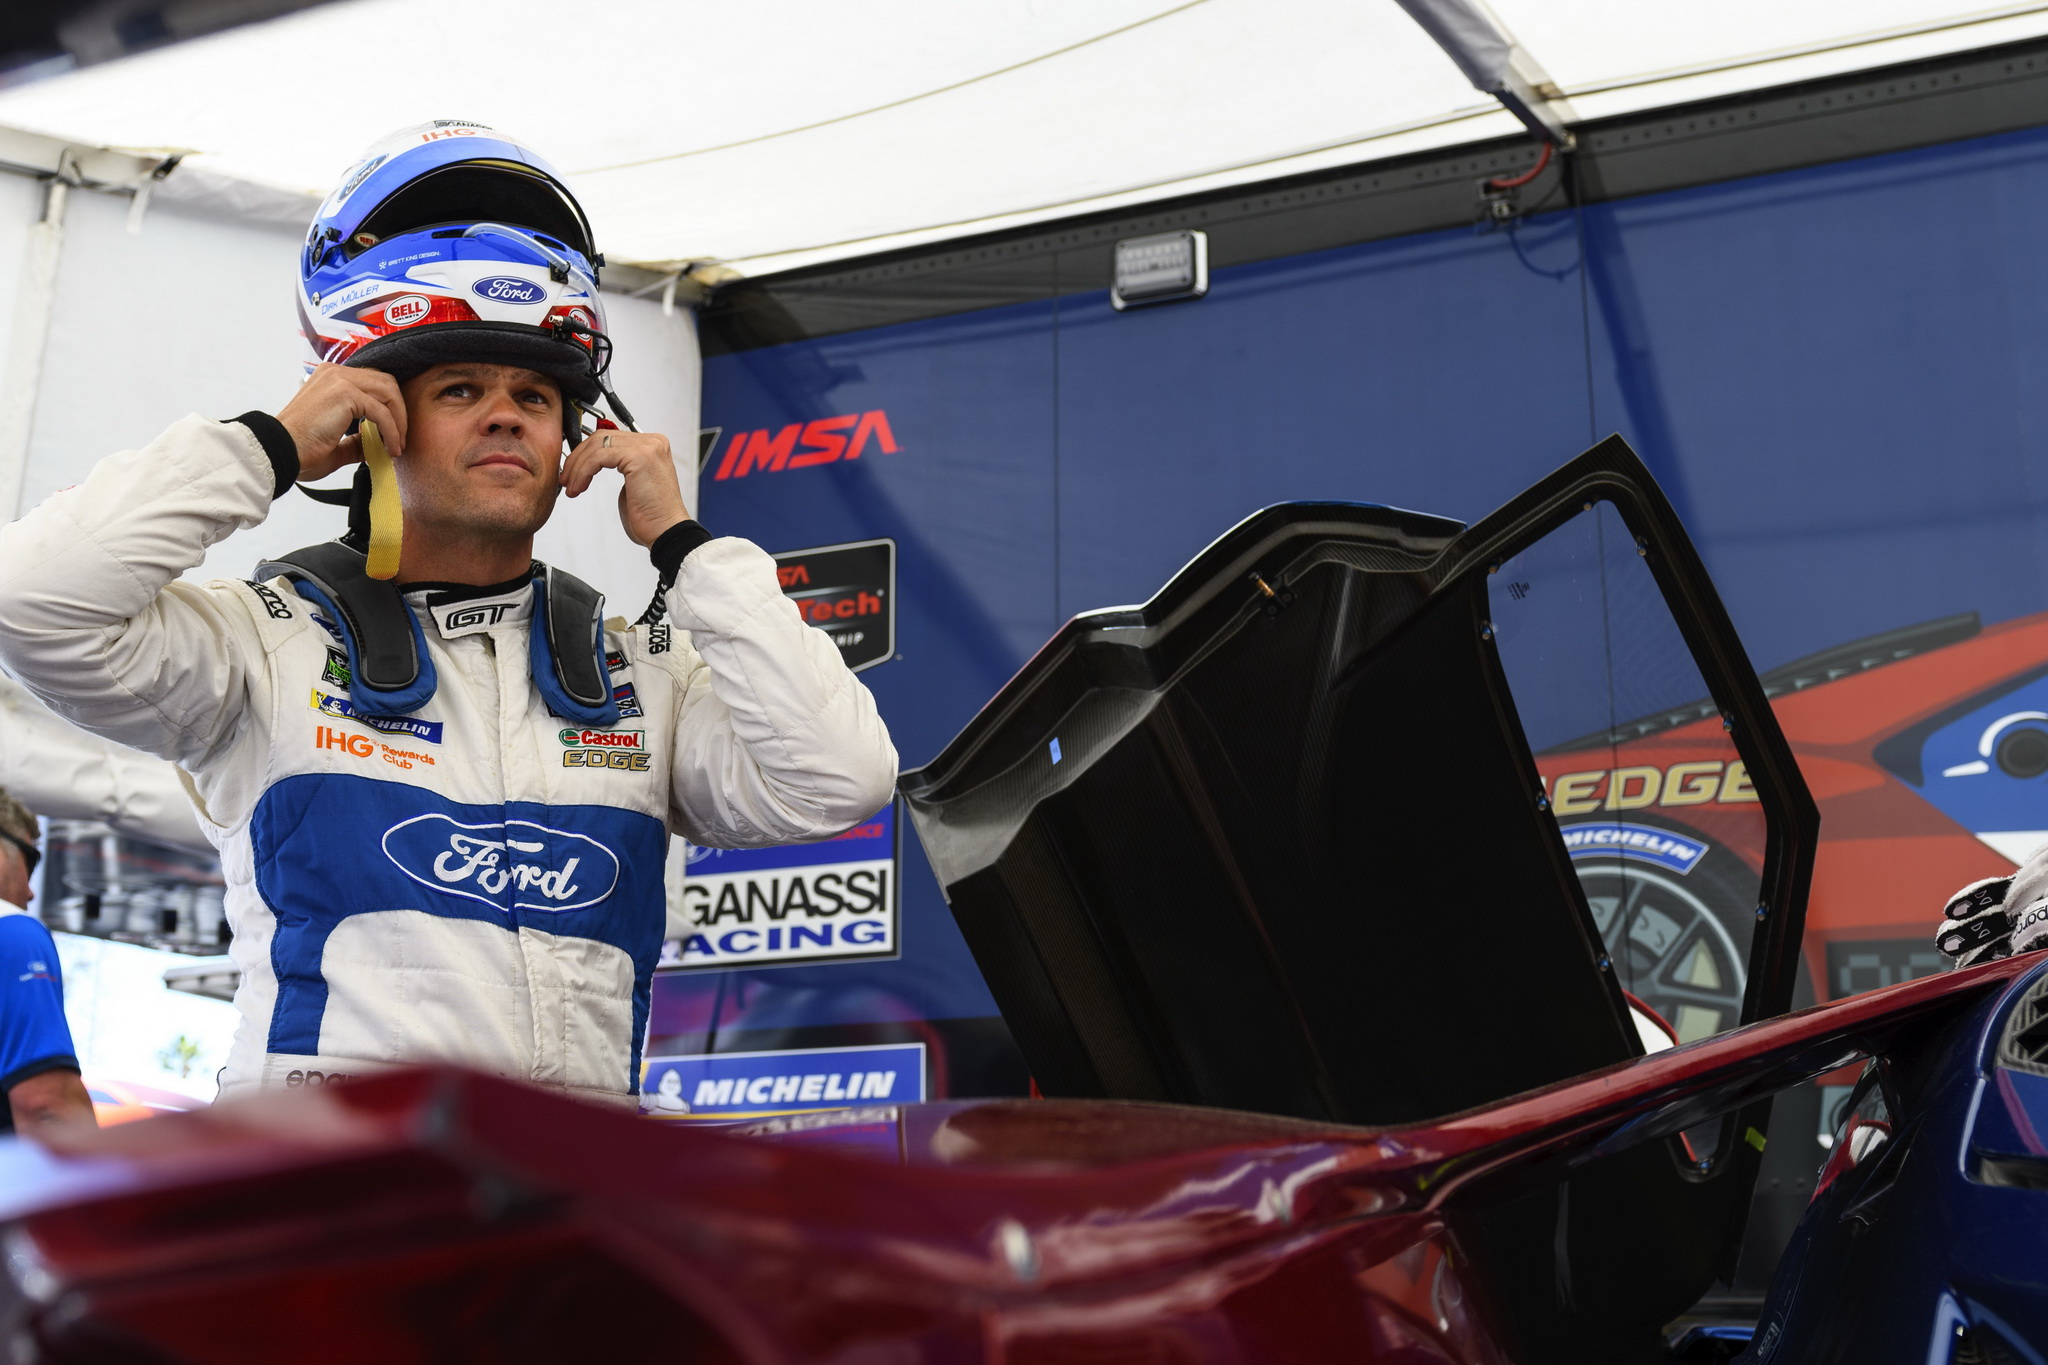 Ford Chip Ganassi Racing Anticipates Debut IMSA Race at Mid-Ohio Sports Car Course